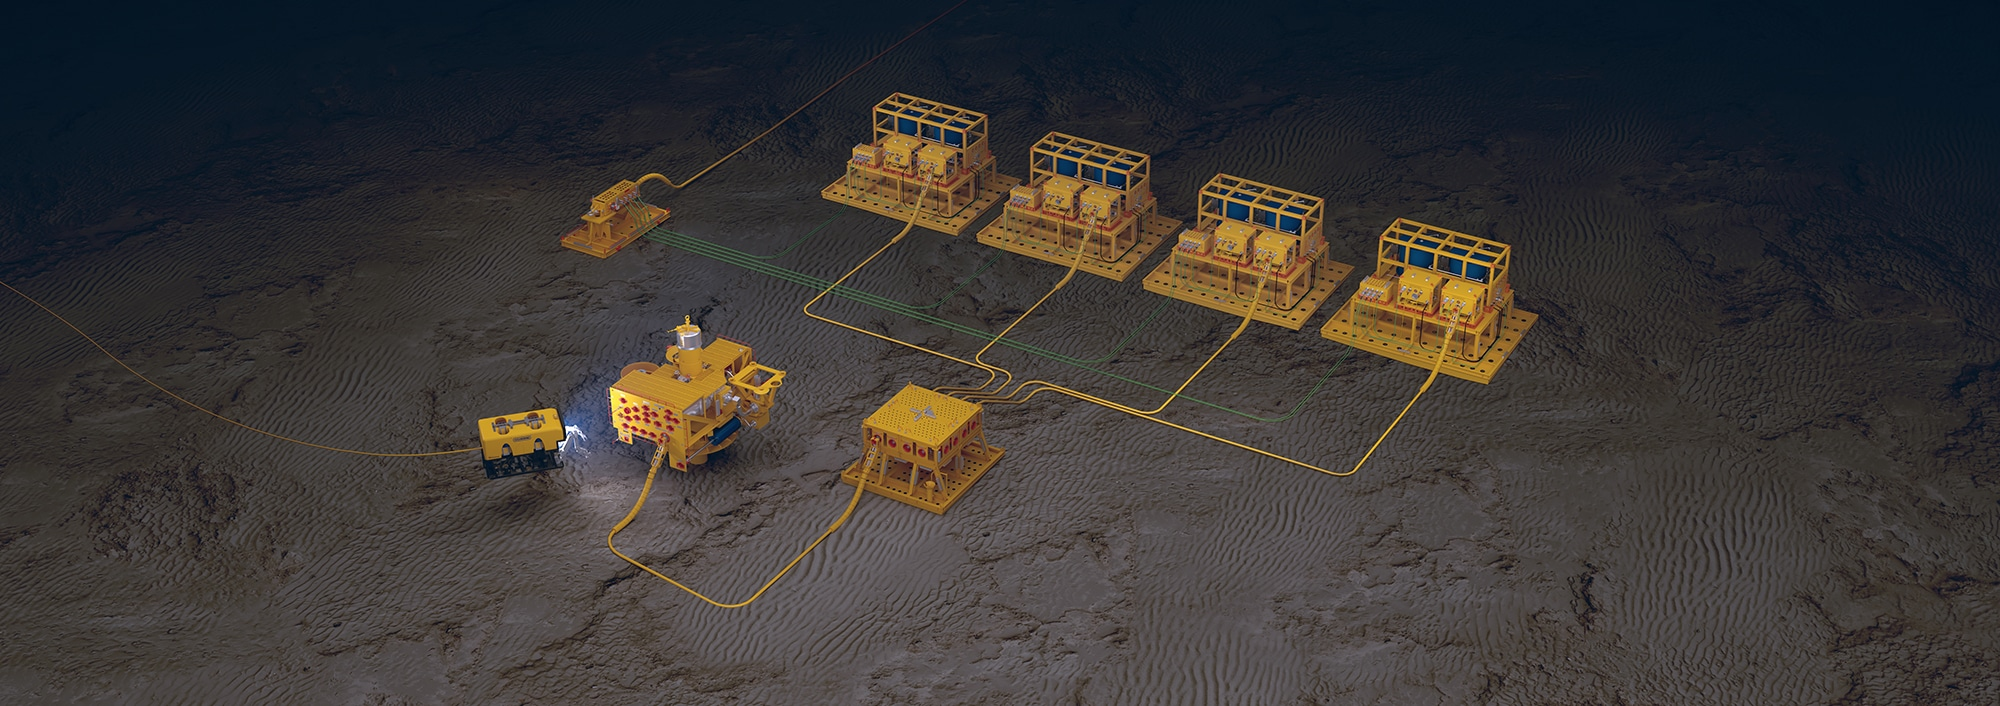 subsea pumping technology